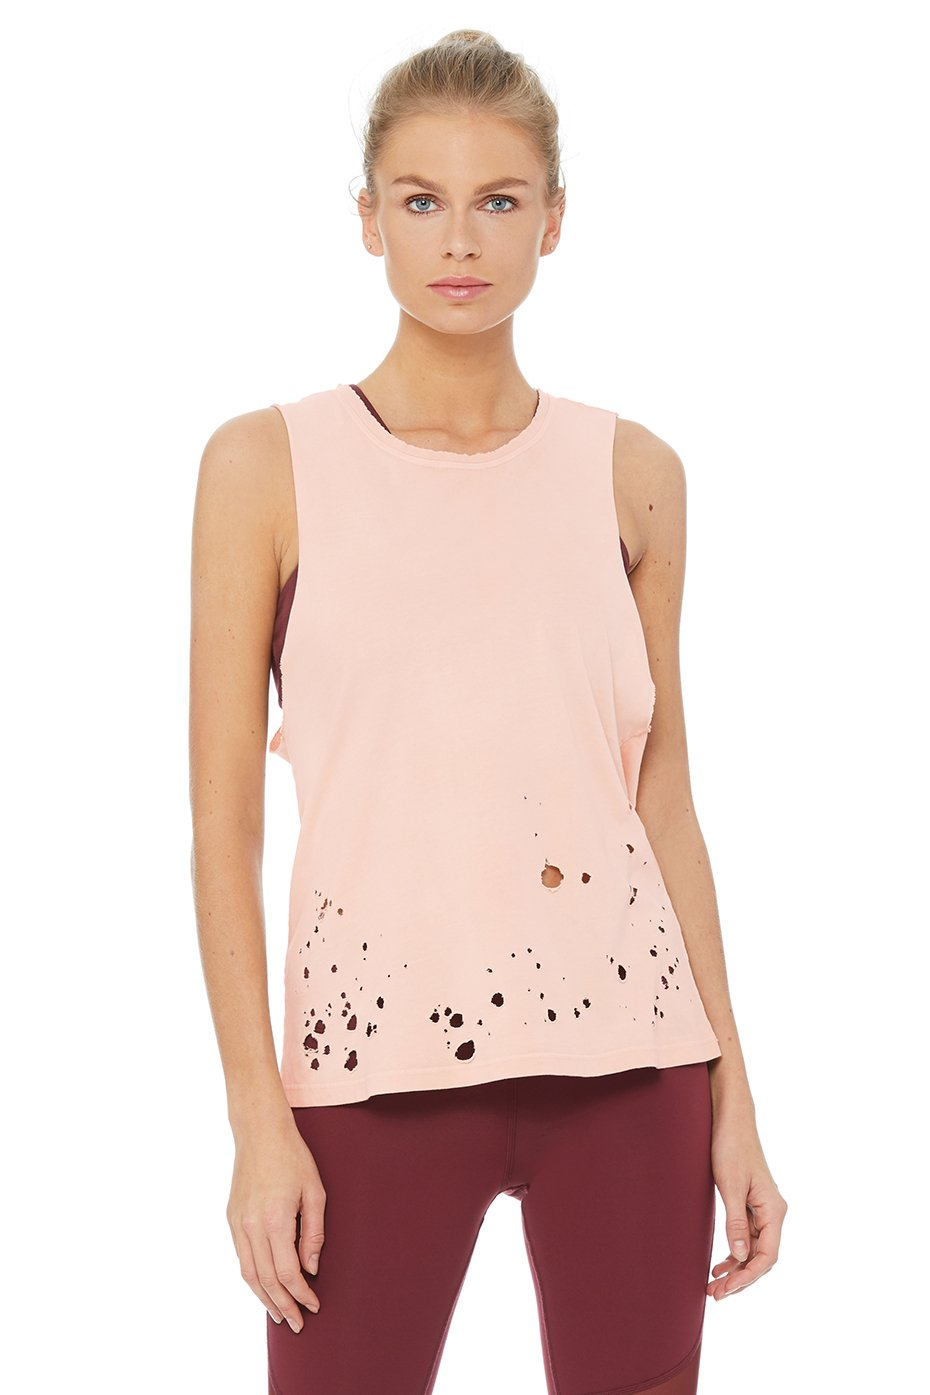 Alo Yoga SMALL Distressed Tank - Nectar